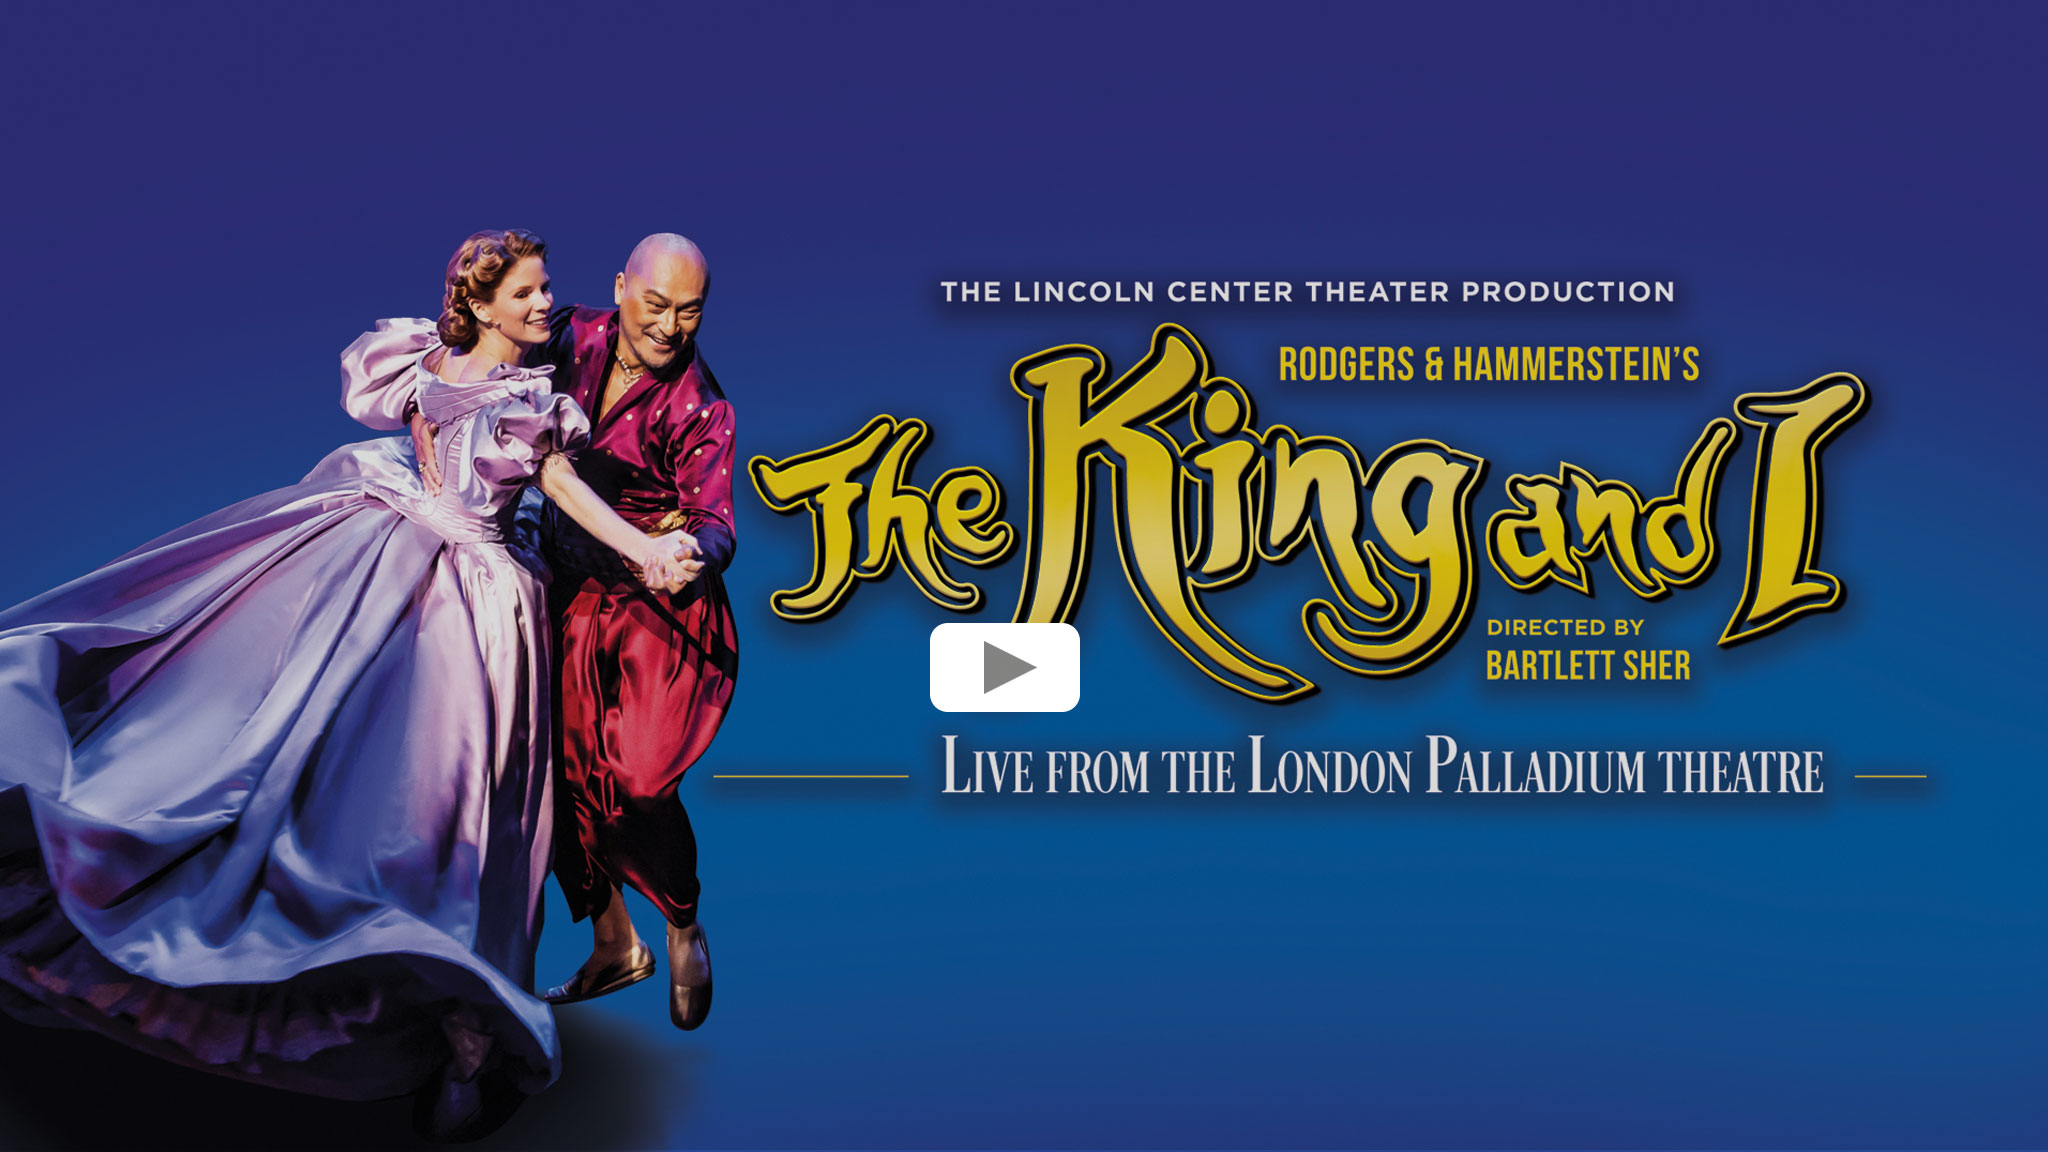 the king and I trailer, trailer agency, editor, trailer production, film trailer, musical trailer